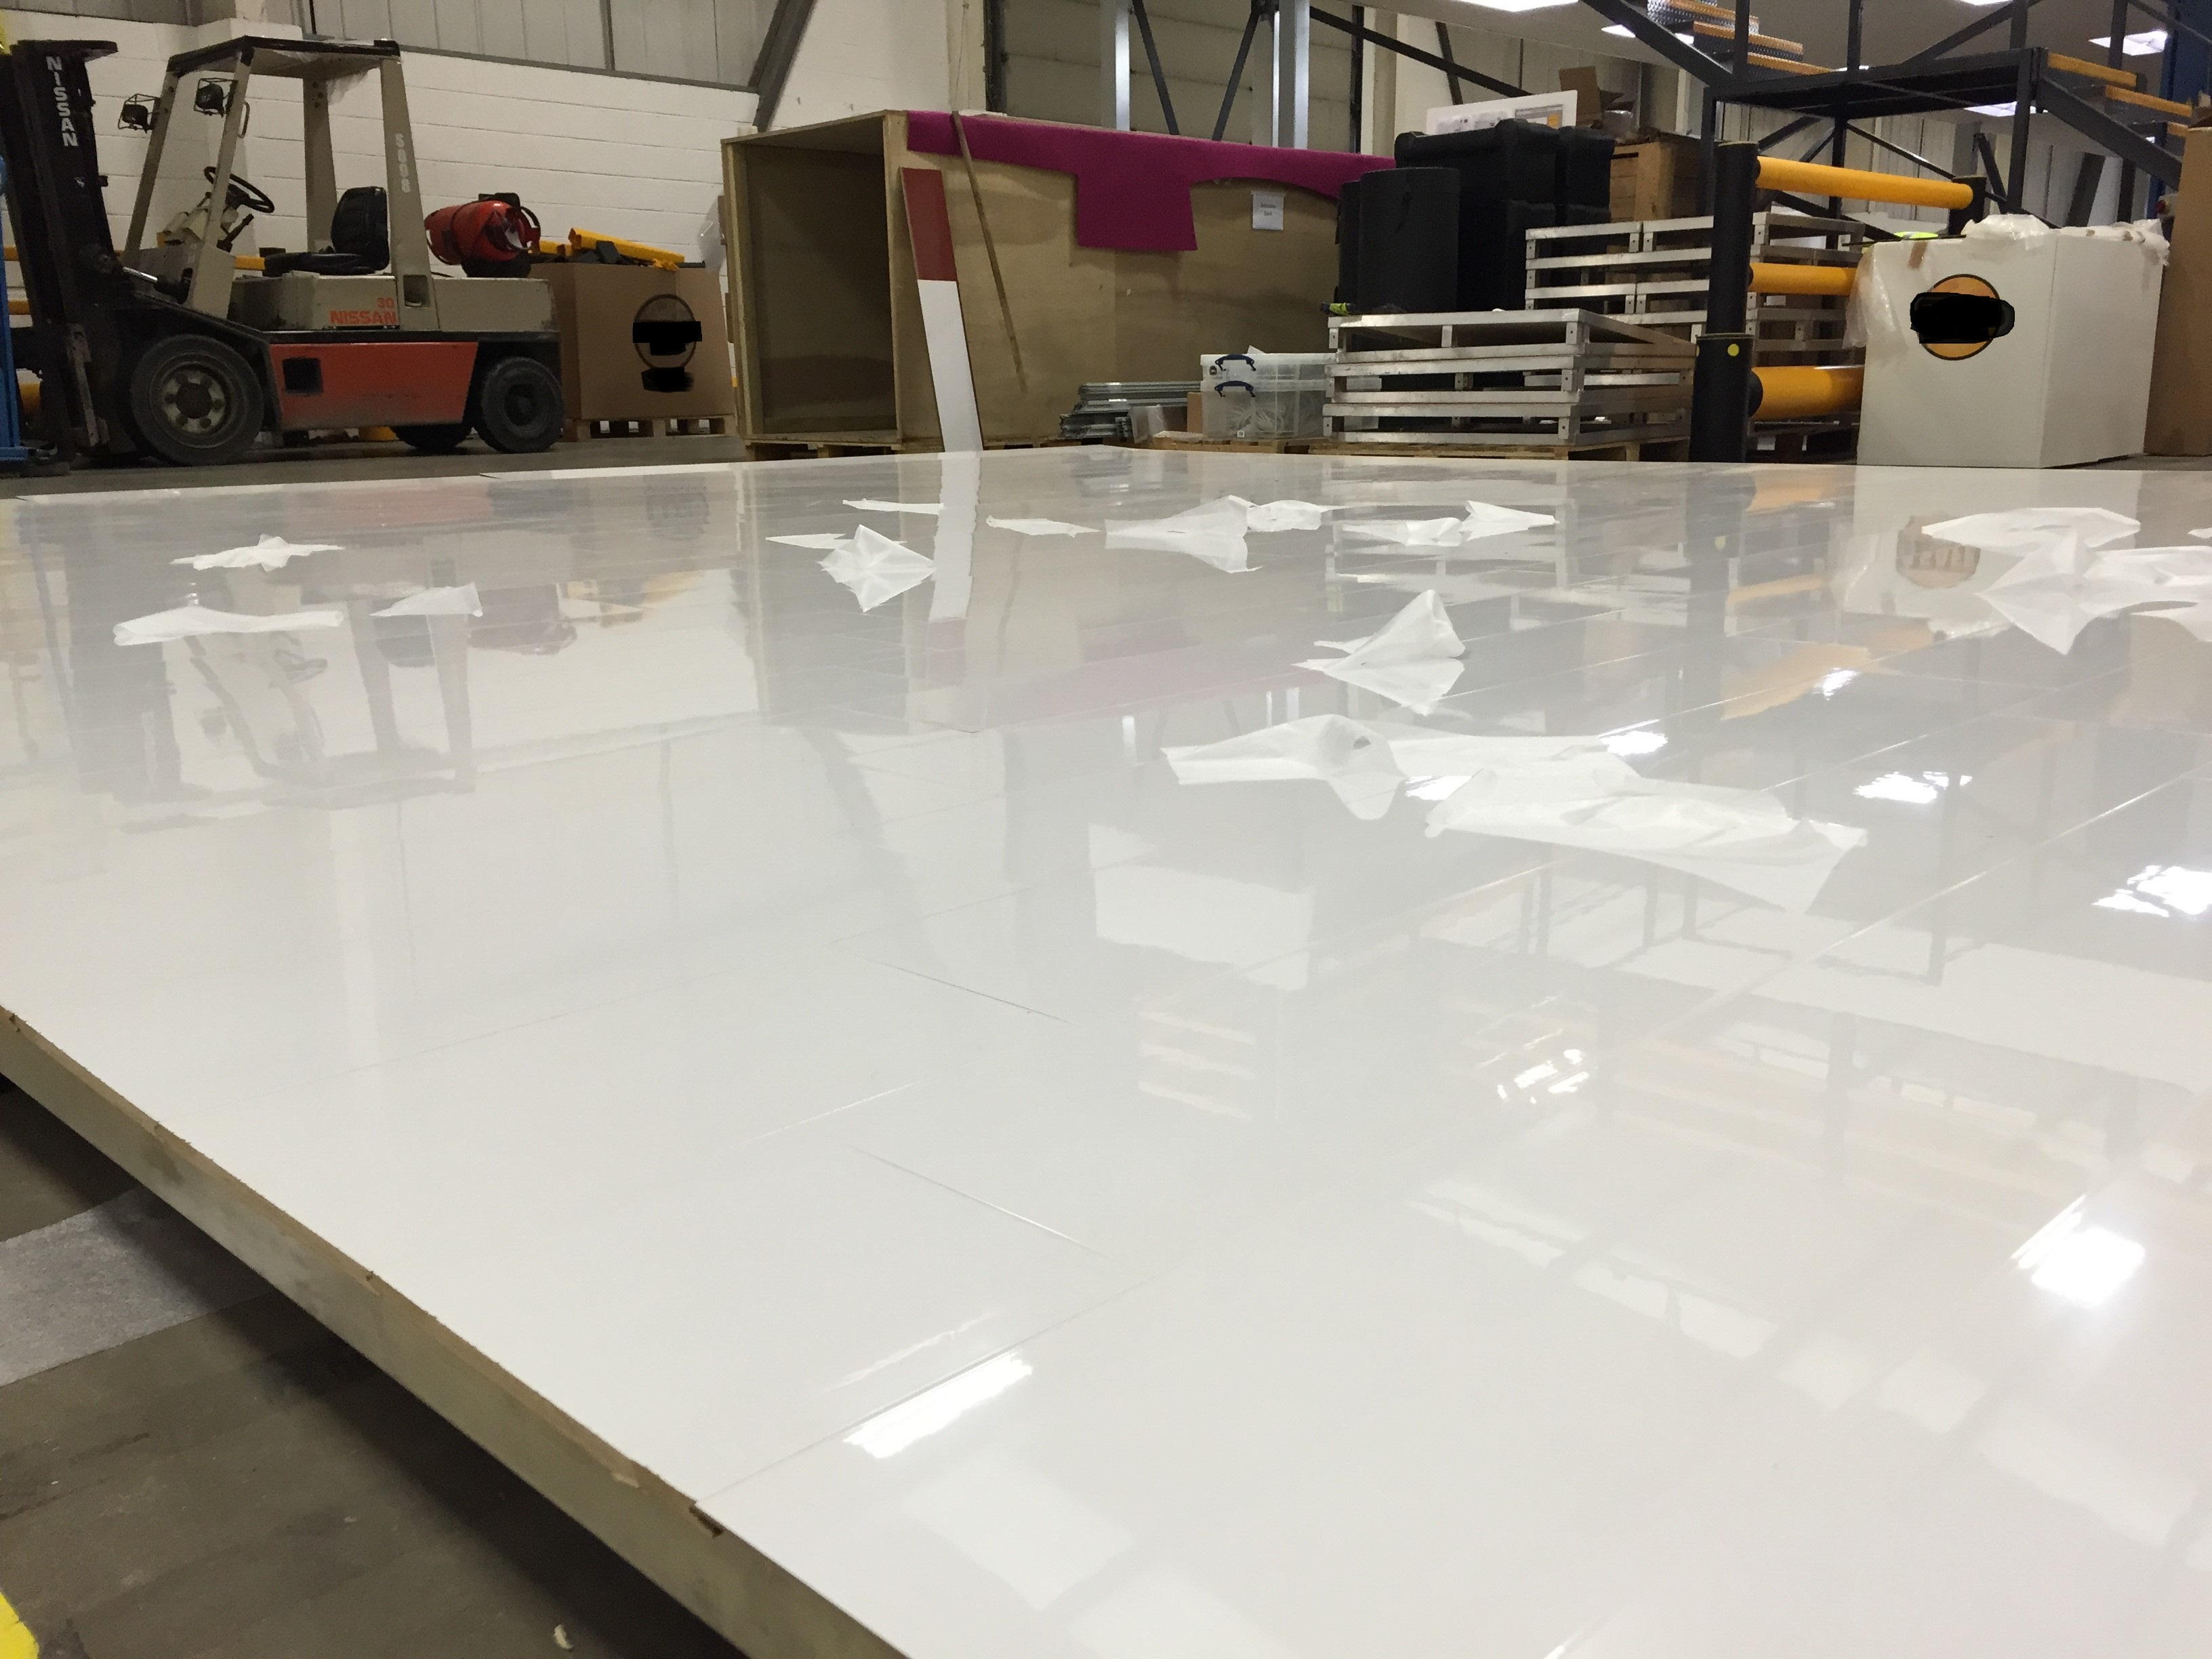 ... is no doubt our hugely popular designer white high gloss laminate